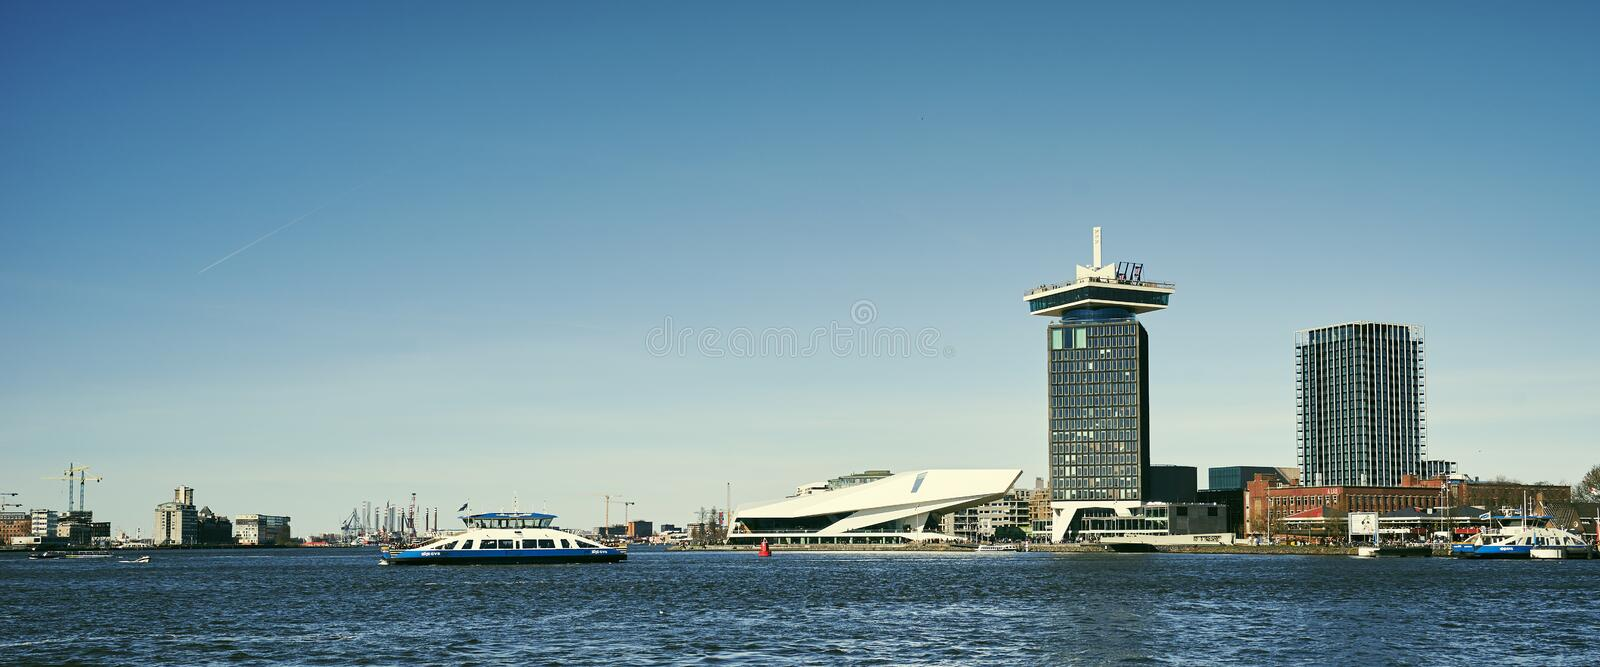 Het IJ, The Amsterdam IJ river with ferry, Eye Film Museum and ADAM Tower royalty free stock image